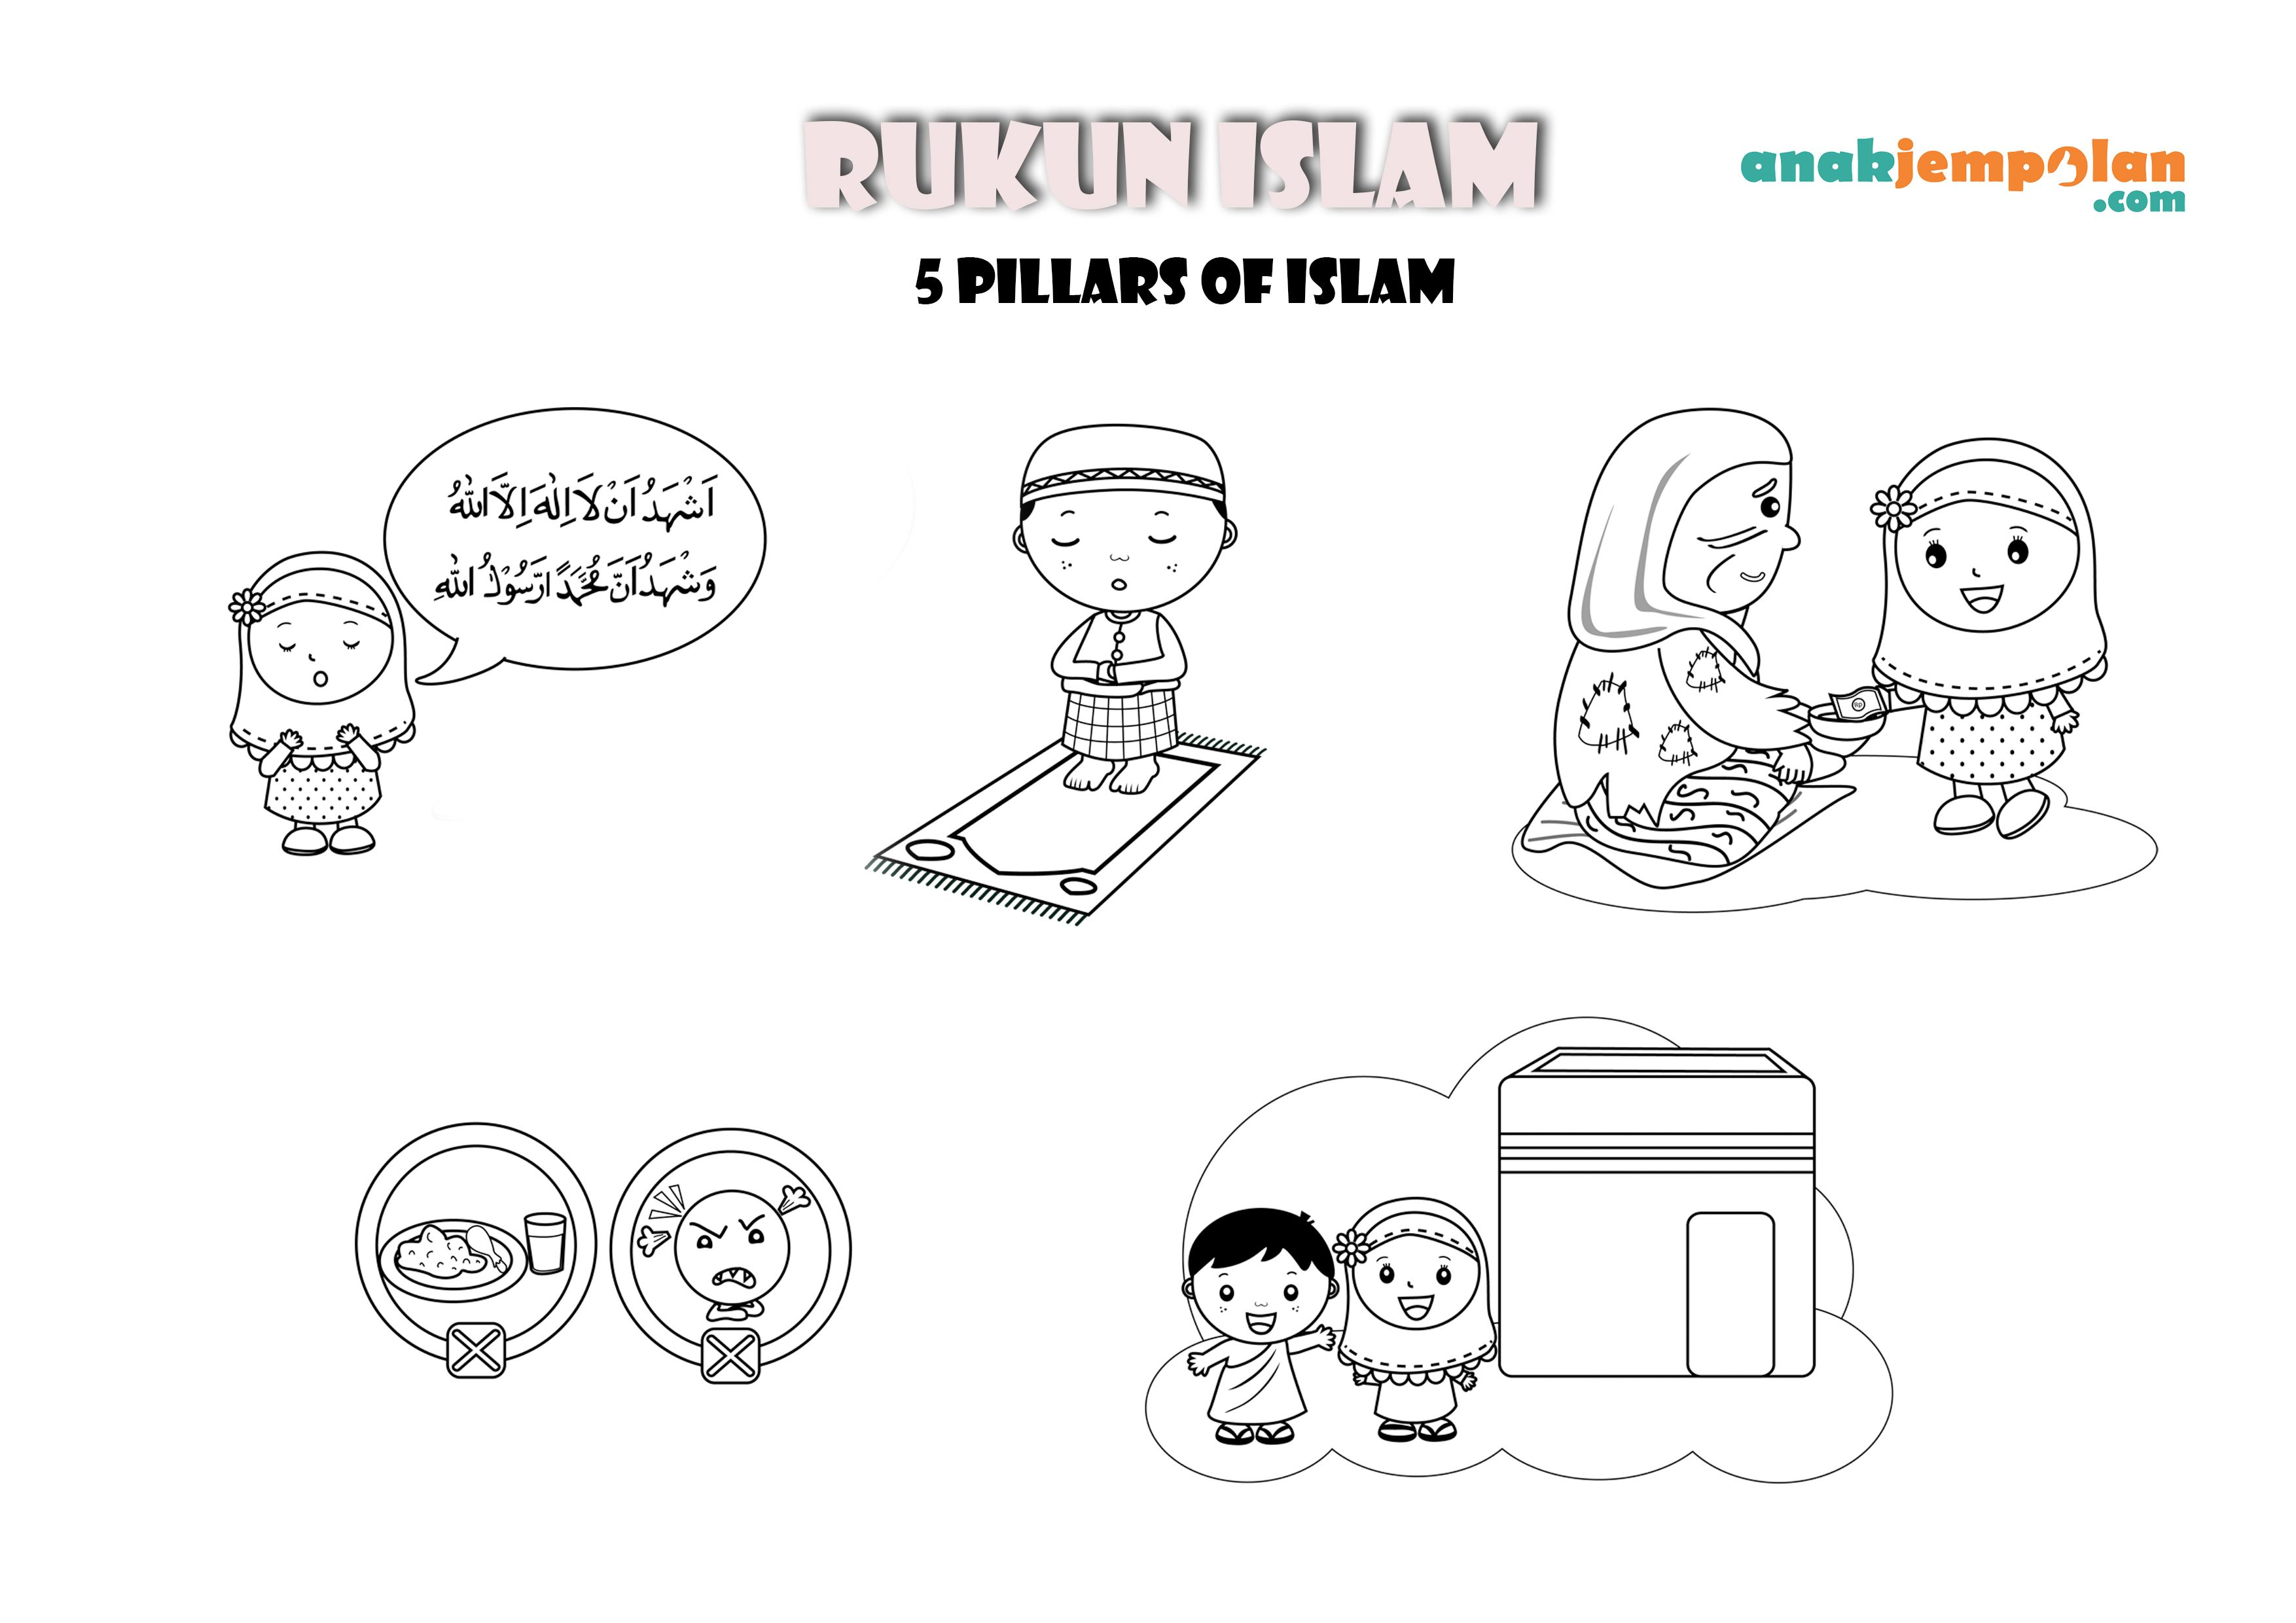 worksheet Five Pillars Of Islam Worksheet 17 best images about islamic studies pillars of islam on pinterest scrapbook kit coloring and for kids